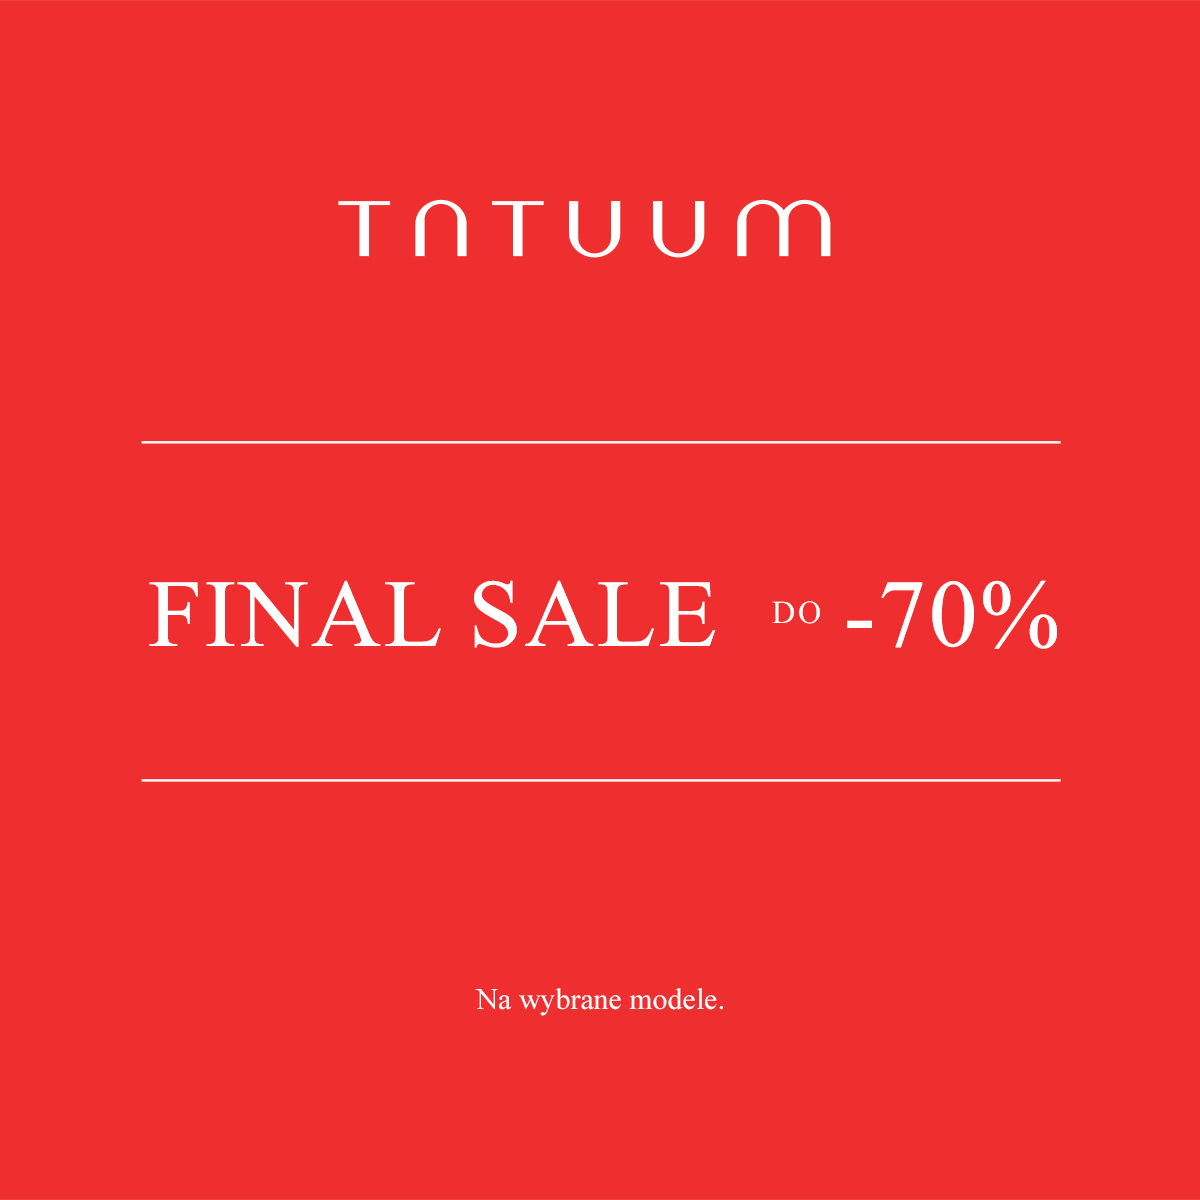 Final SALE w TATUUM!